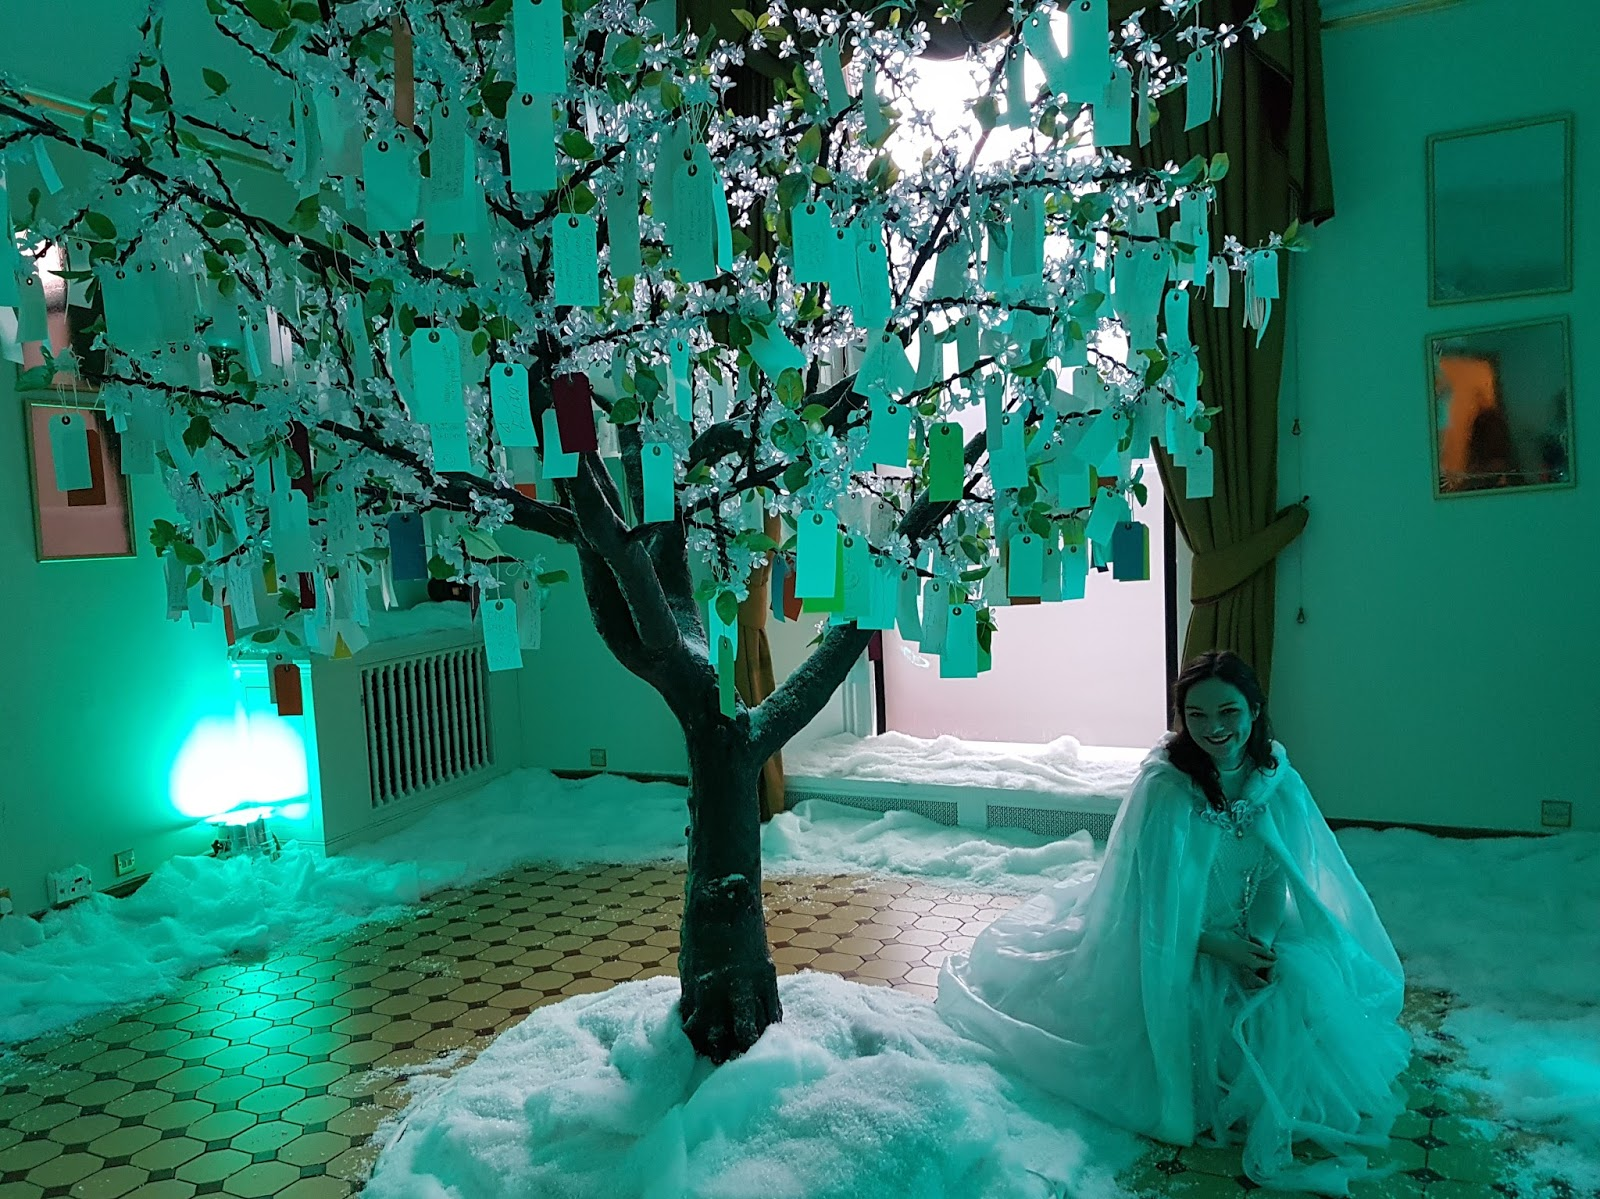 snow queen and wishing tree